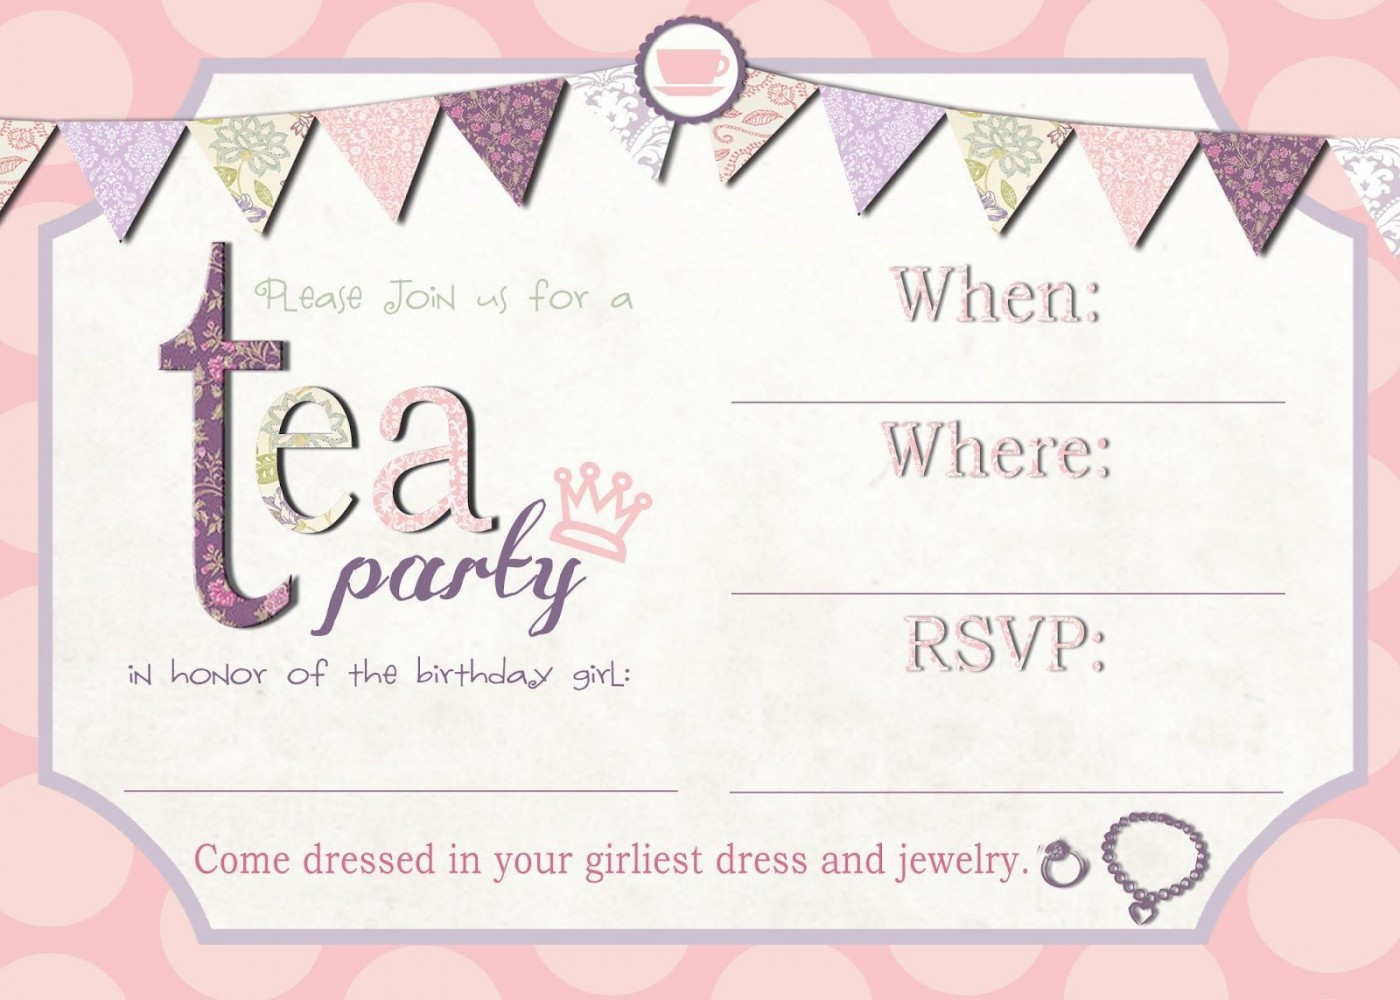 001 Awful Tea Party Invitation Template High Definition  Card Victorian Wording For Bridal Shower1400